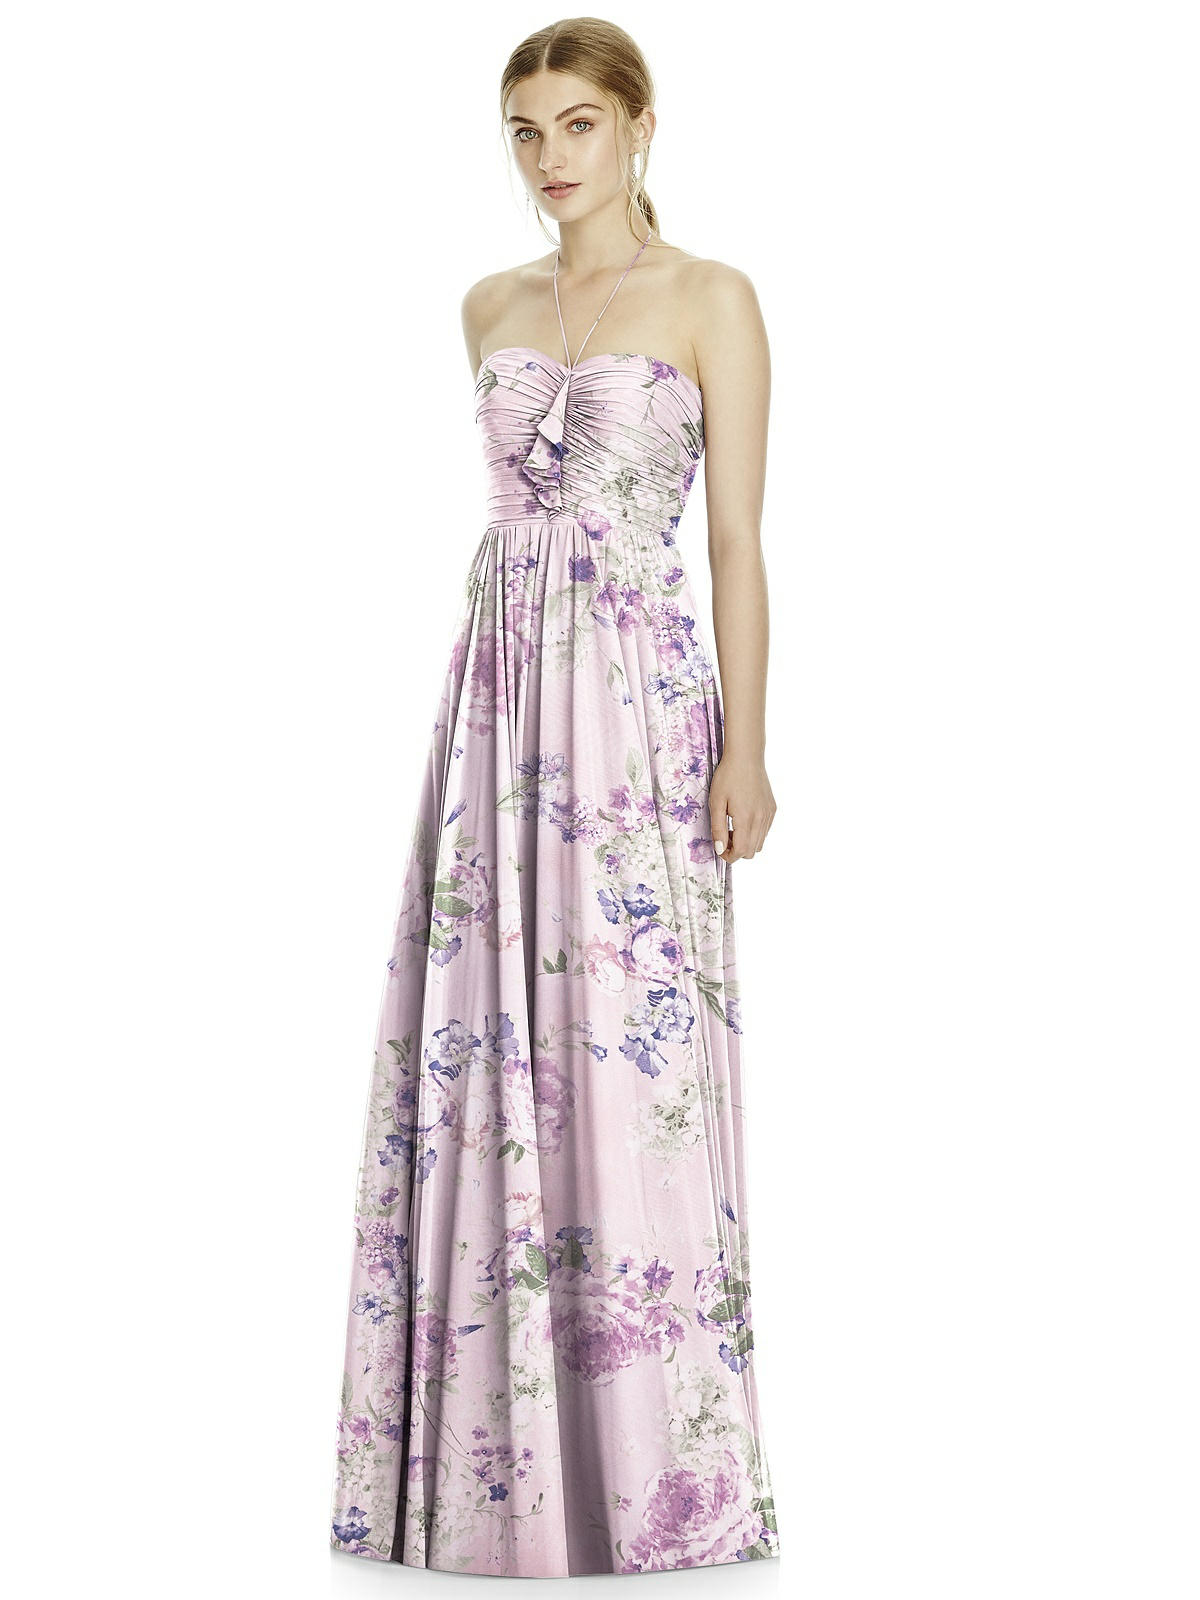 7a381d6411 ... JY Jenny Yoo Bridesmaid Dress JY533. This product is only available  through our sale or closeout section. ○  ○